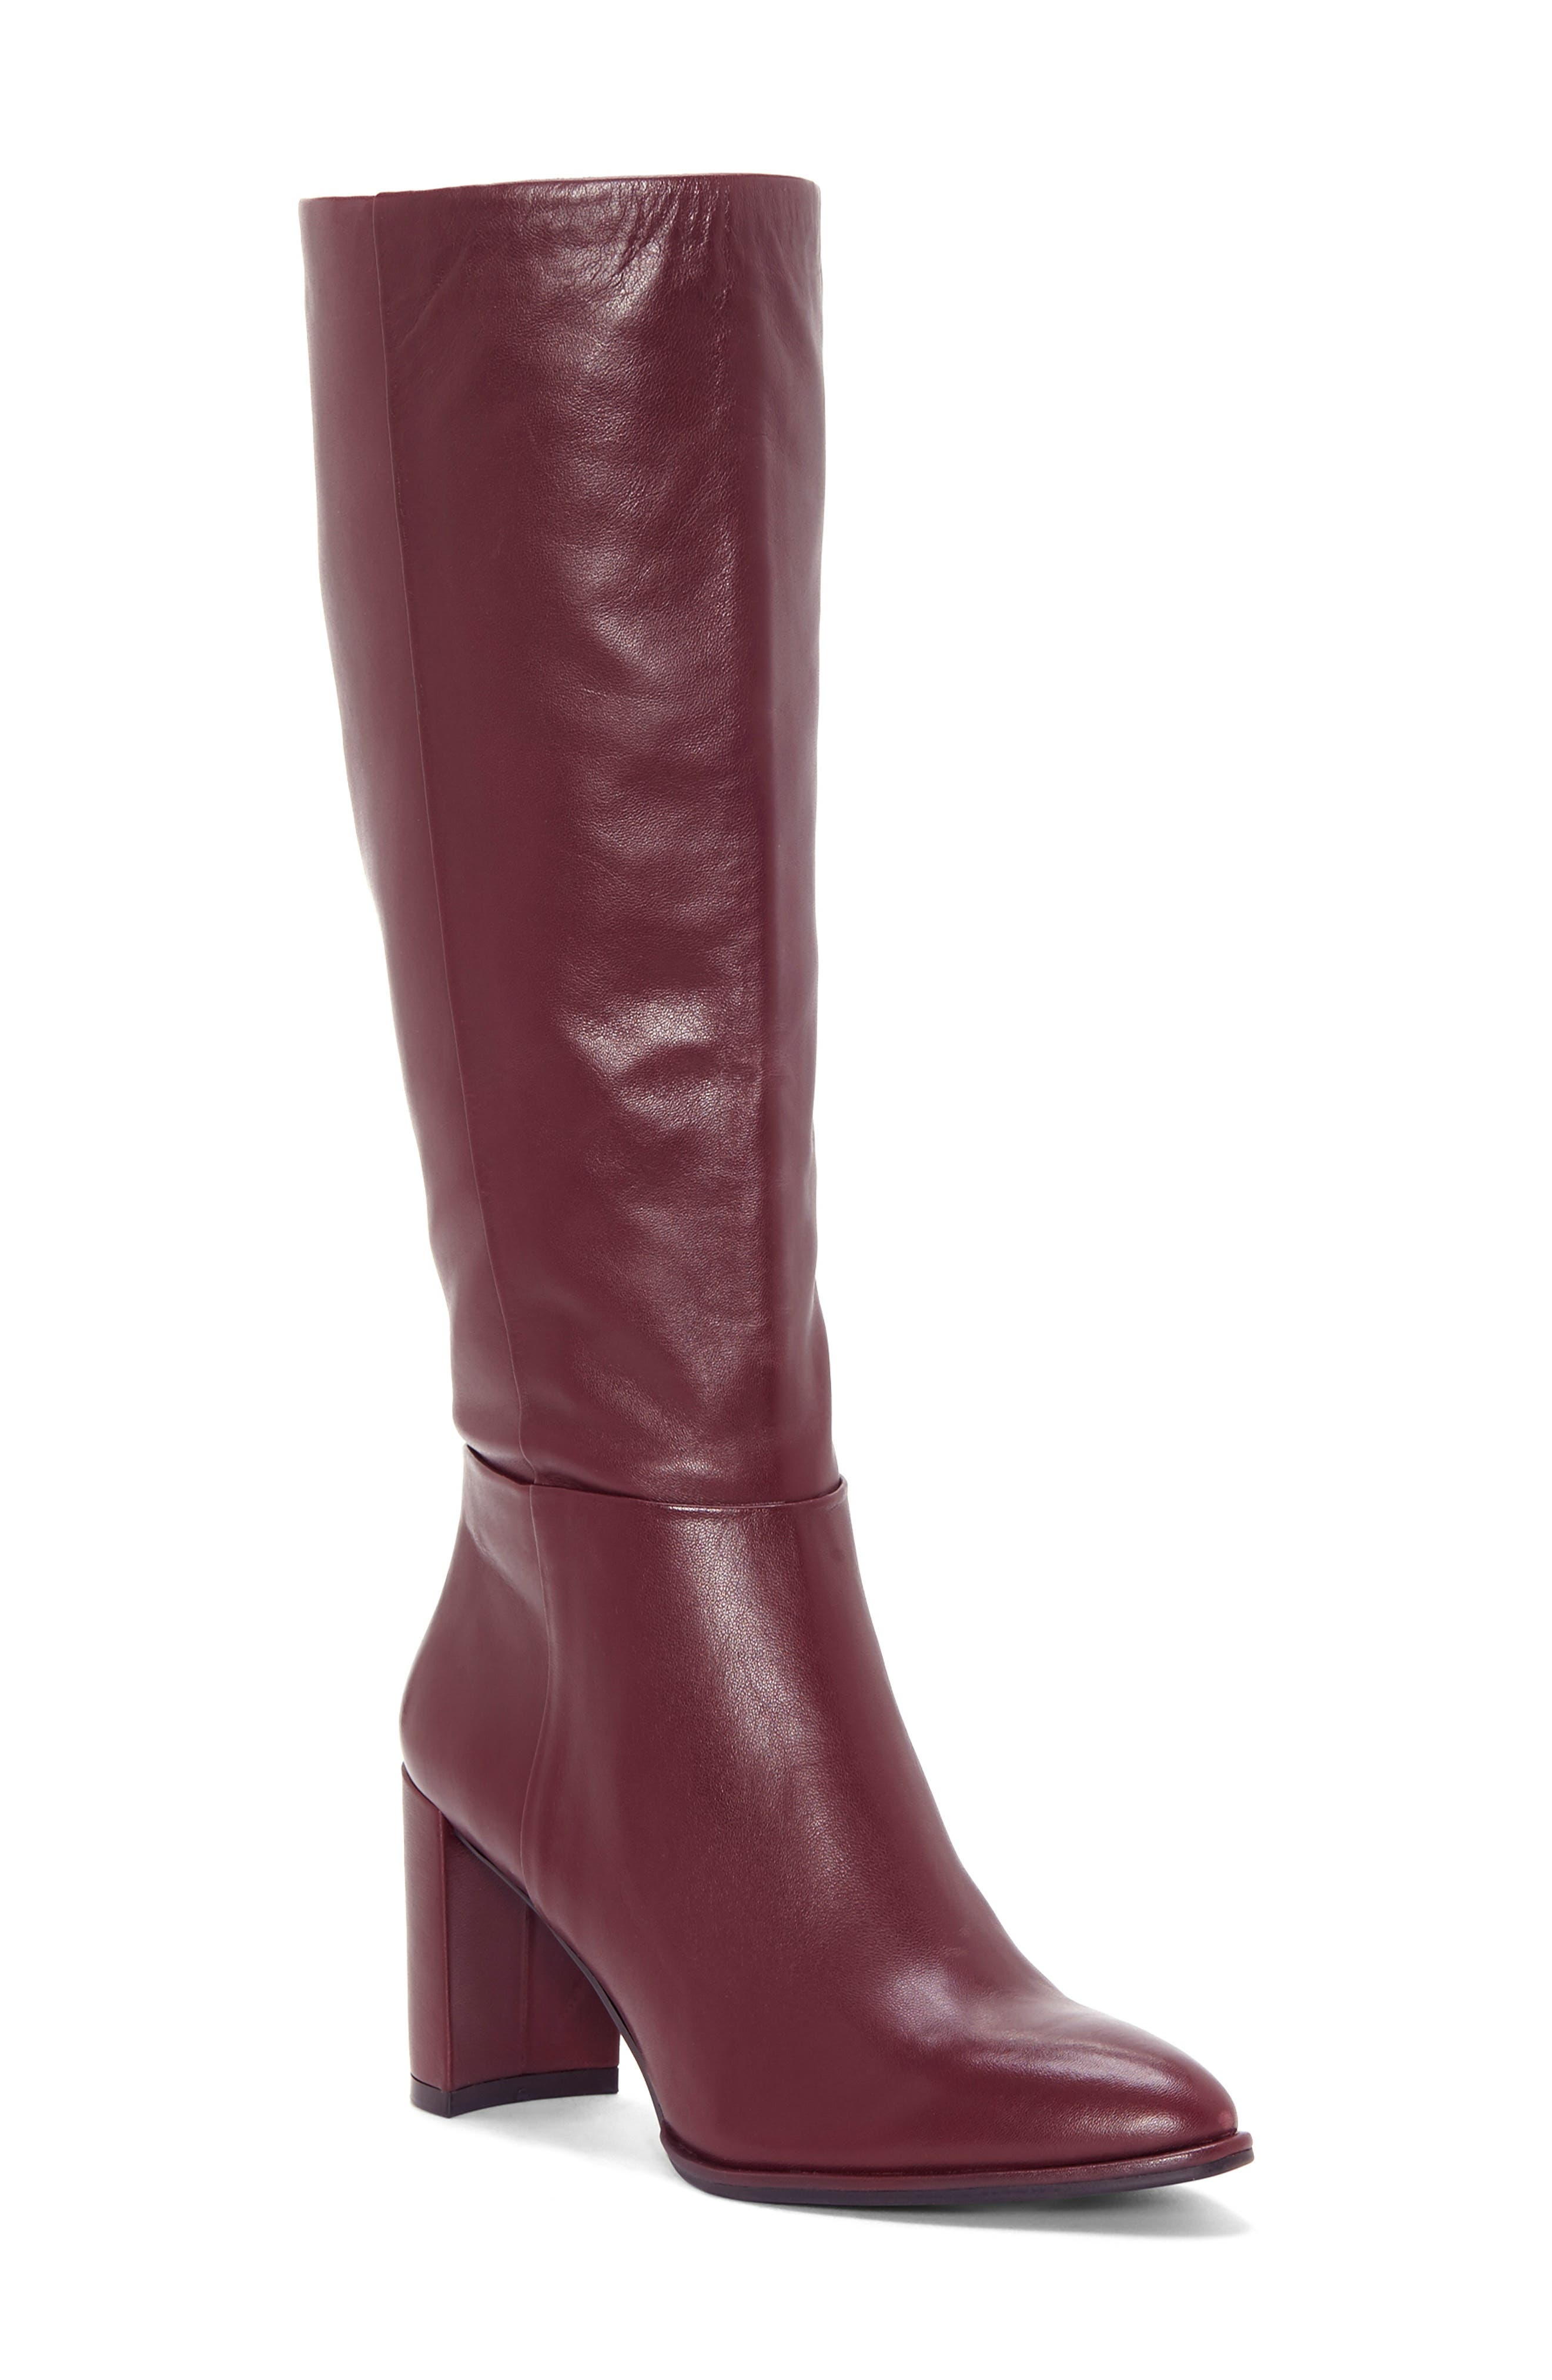 ENZO ANGIOLINI, Wenda Knee High Boot, Main thumbnail 1, color, MULLED WINE LEATHER